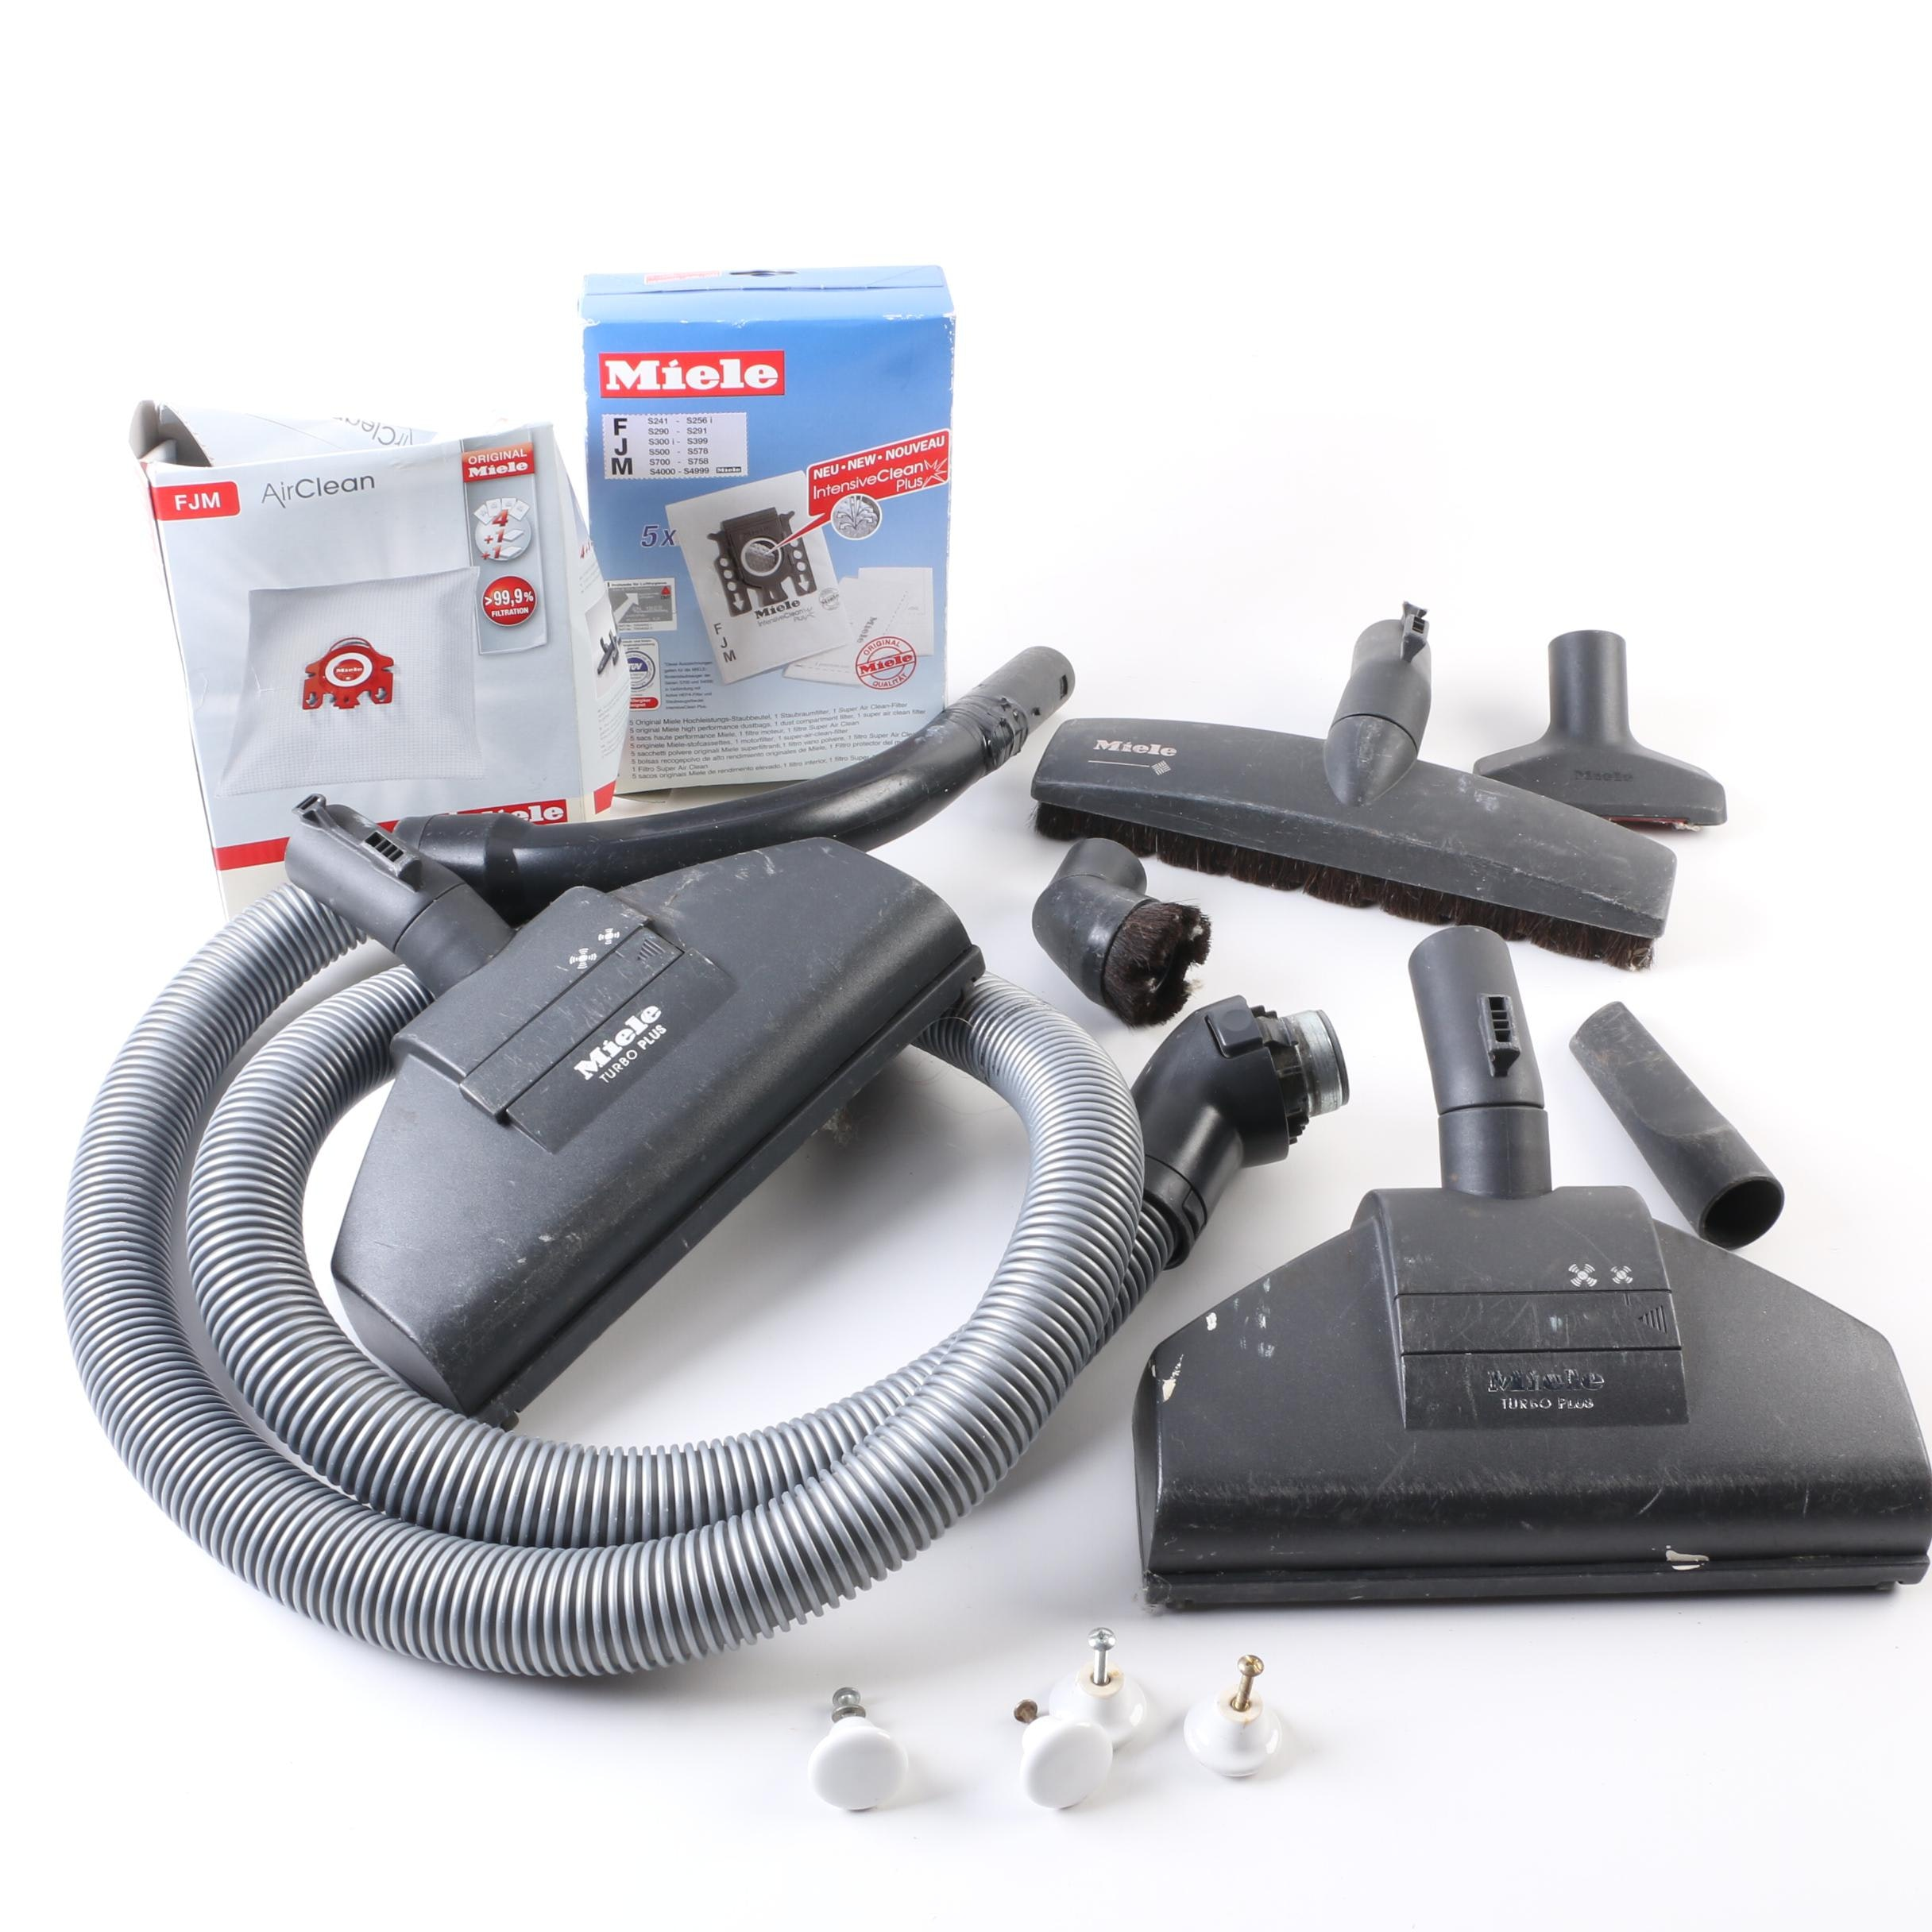 Miele Air Clean Vacuum Filters with Hoses, Attachments, and More